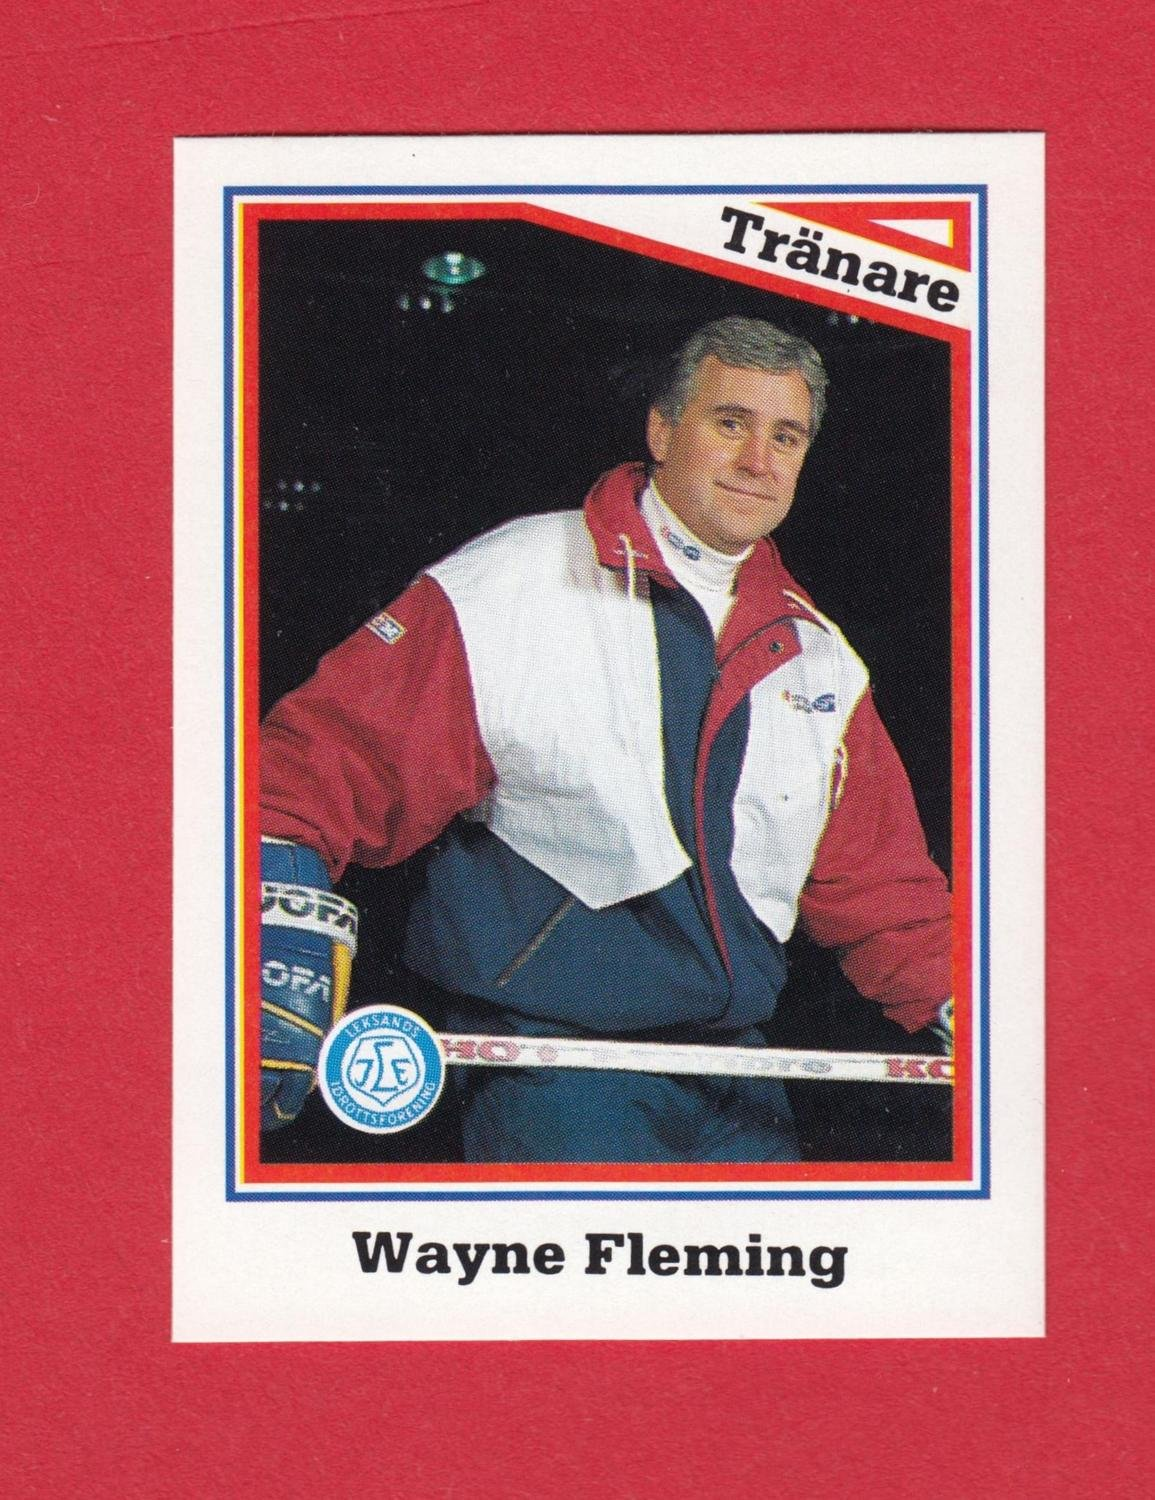 1993-94 Semic Elitserien #294	Wayne Flemming	Leksand